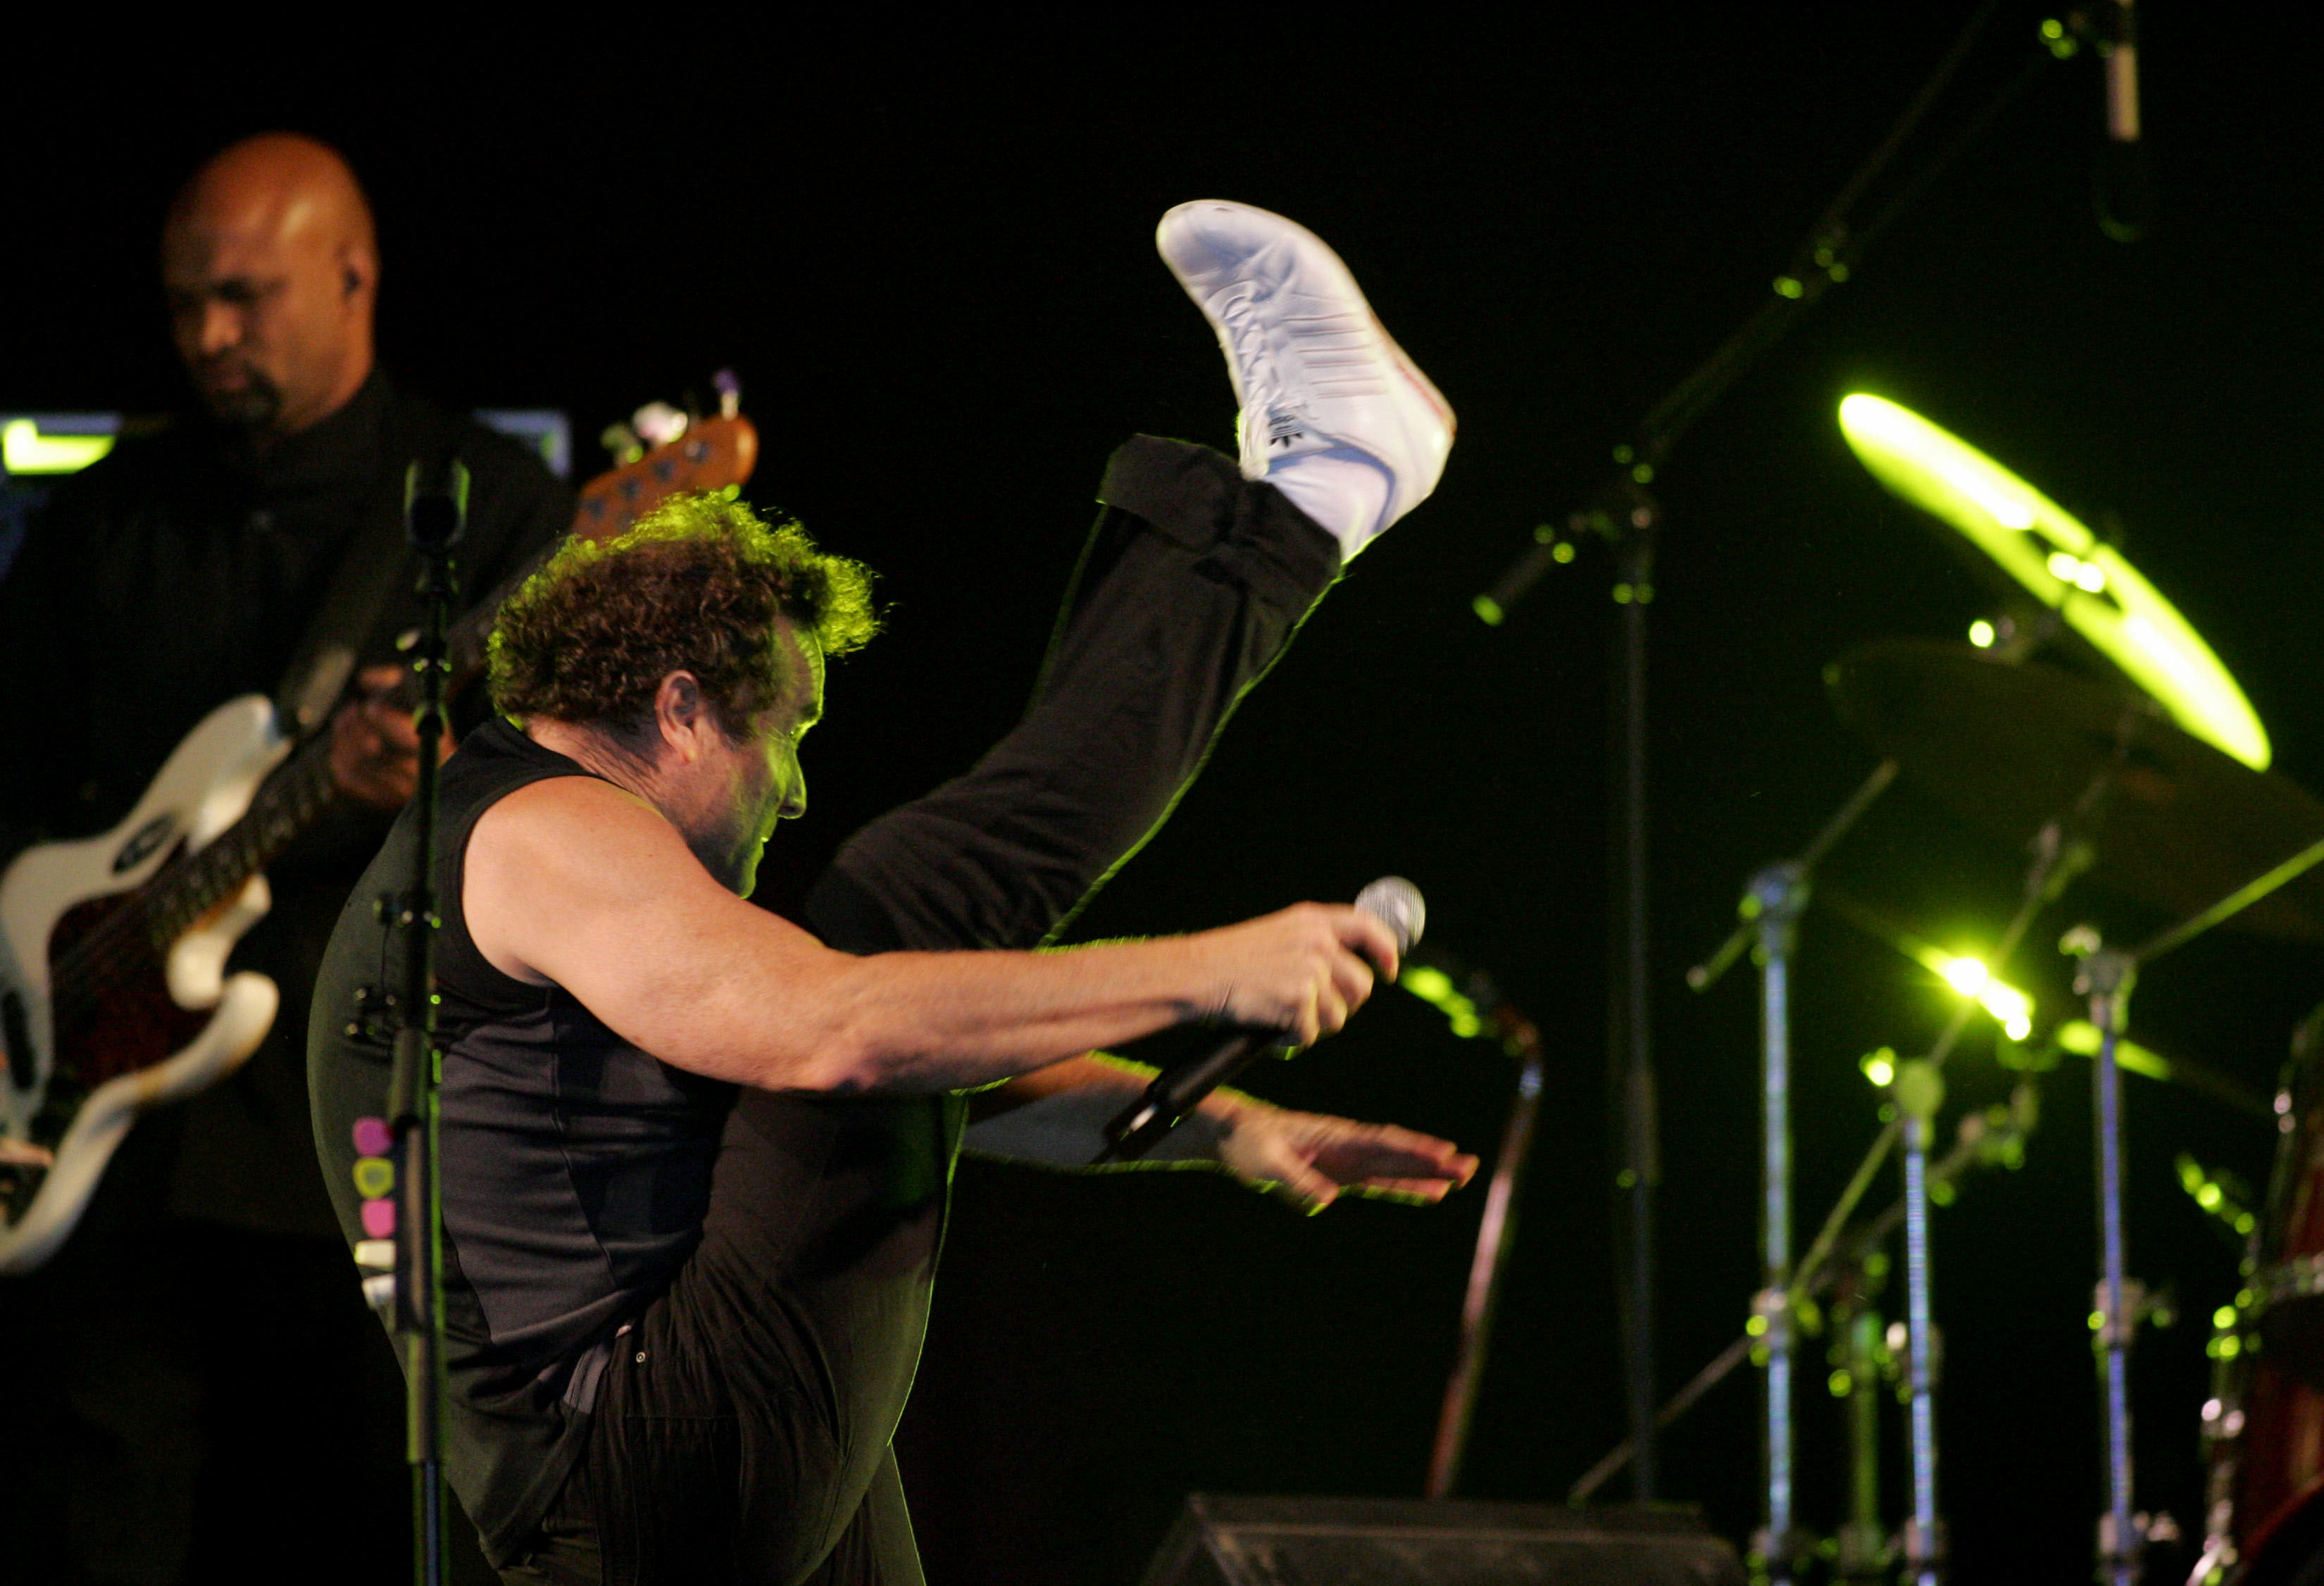 South African singer Johnny Clegg performes on stage during the Fez Festival of World Sacred Music in Fez.